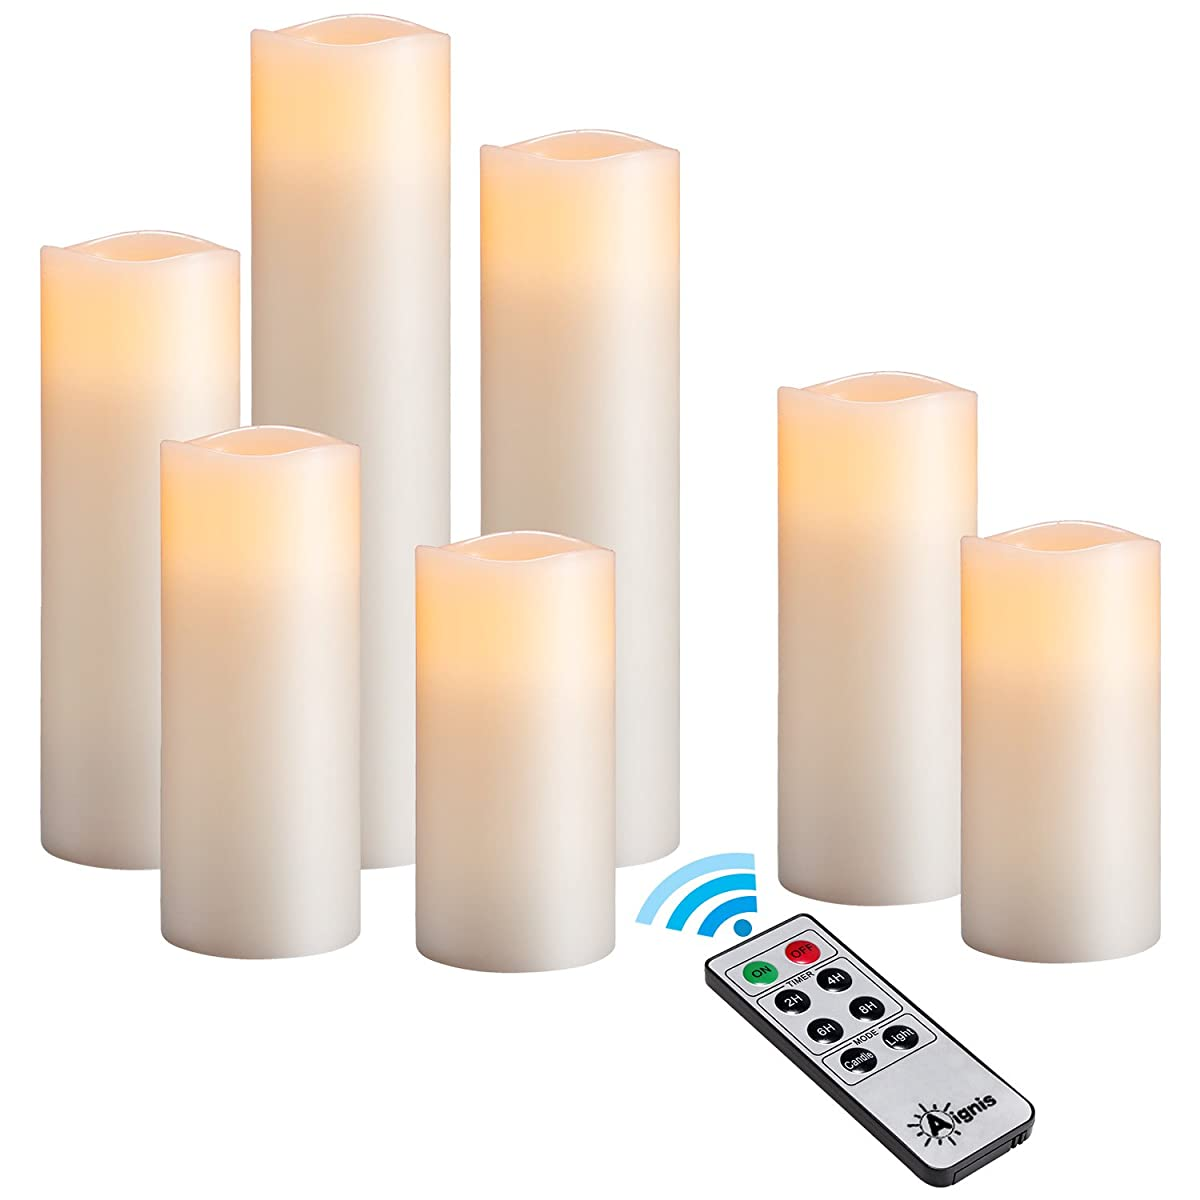 """Flameless Candles, Battery Candles Set of 9(H4""""5""""6""""7""""8""""9"""" x D2.2"""") Real Wax Ivory Pillars Candles With 10-key Remote Timer By Aignis"""